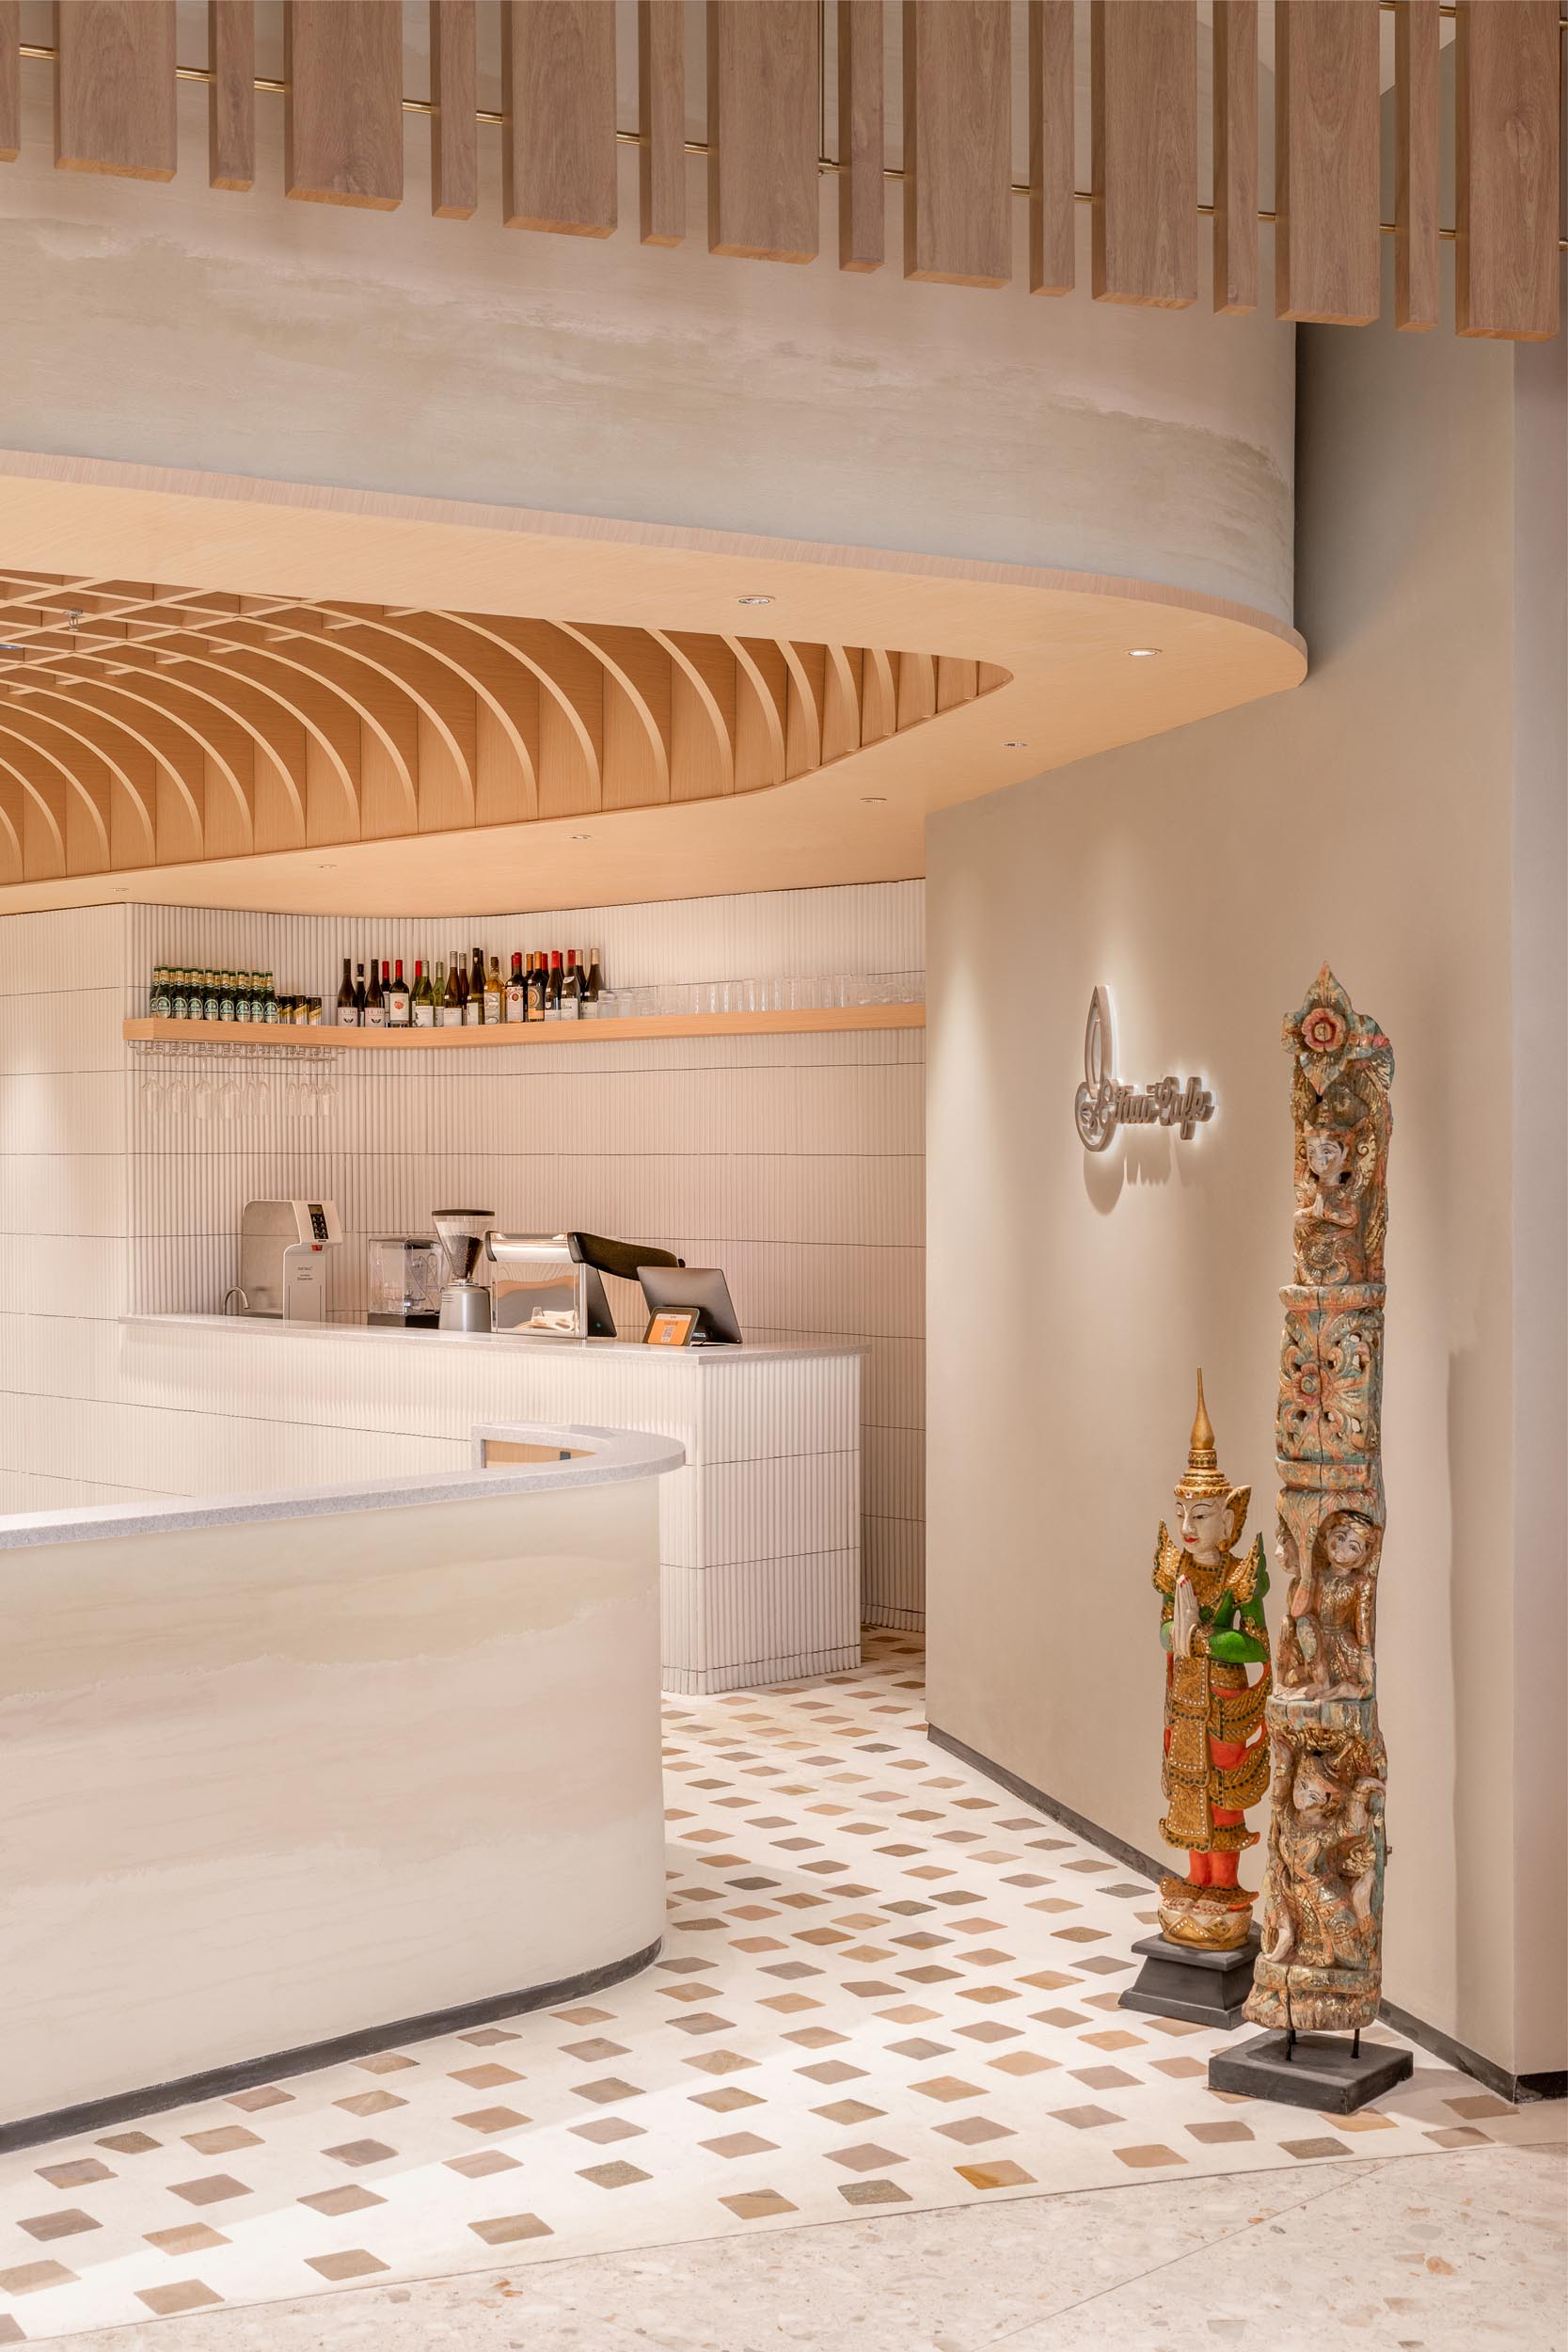 The nooks and sitting areas of this modern cafe appear to have been carved out of the rammed earth that envelops the facade.